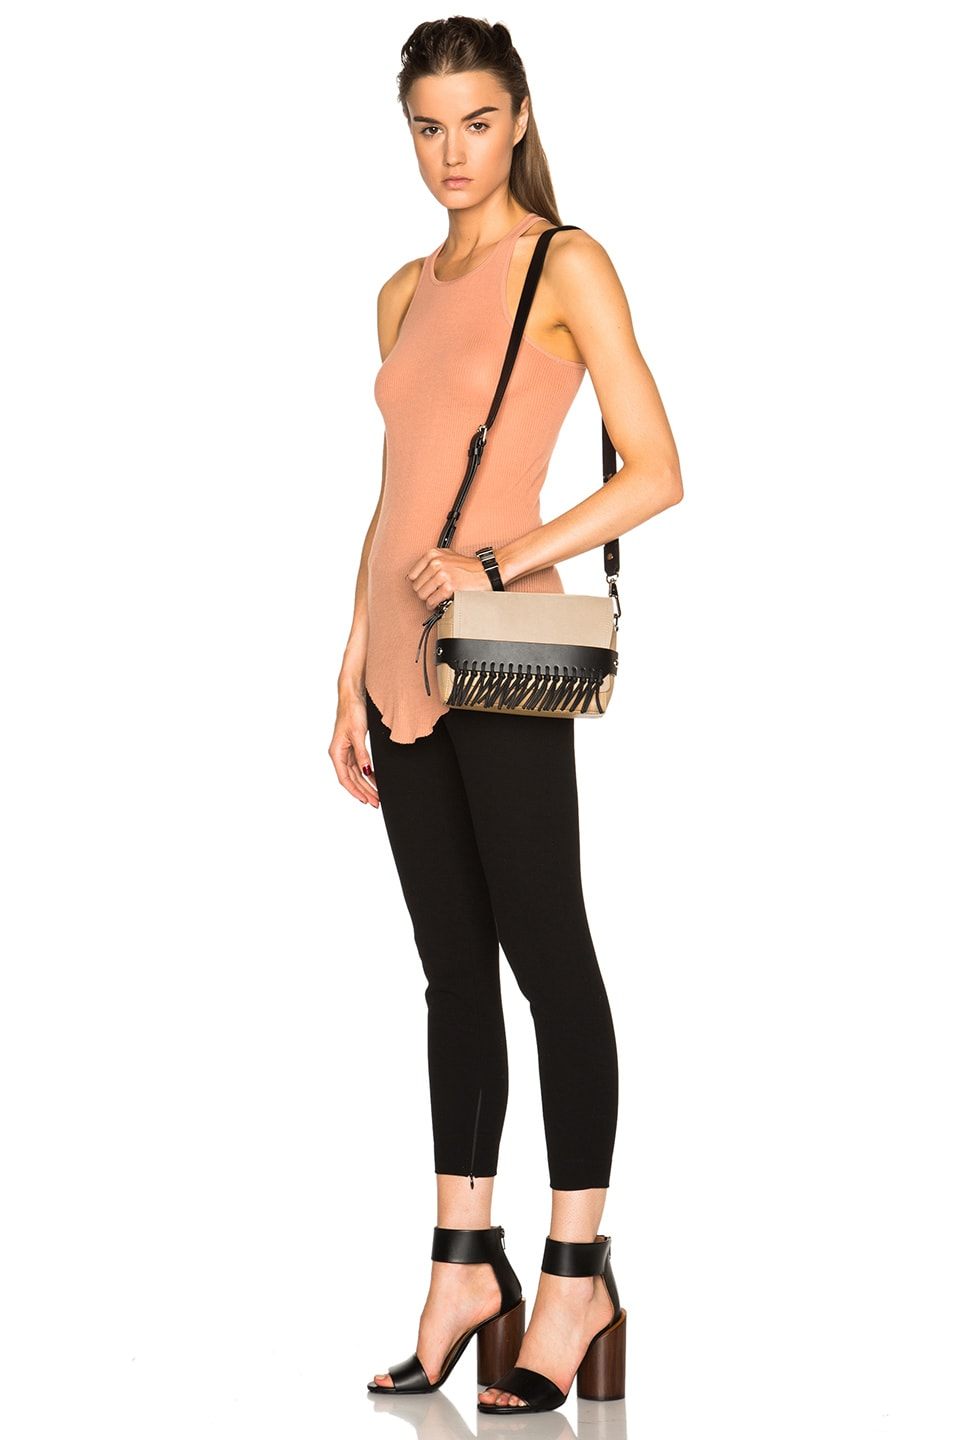 Image 2 of 3.1 phillip lim Bianca Fringe Crossbody Bag in Almond Beige